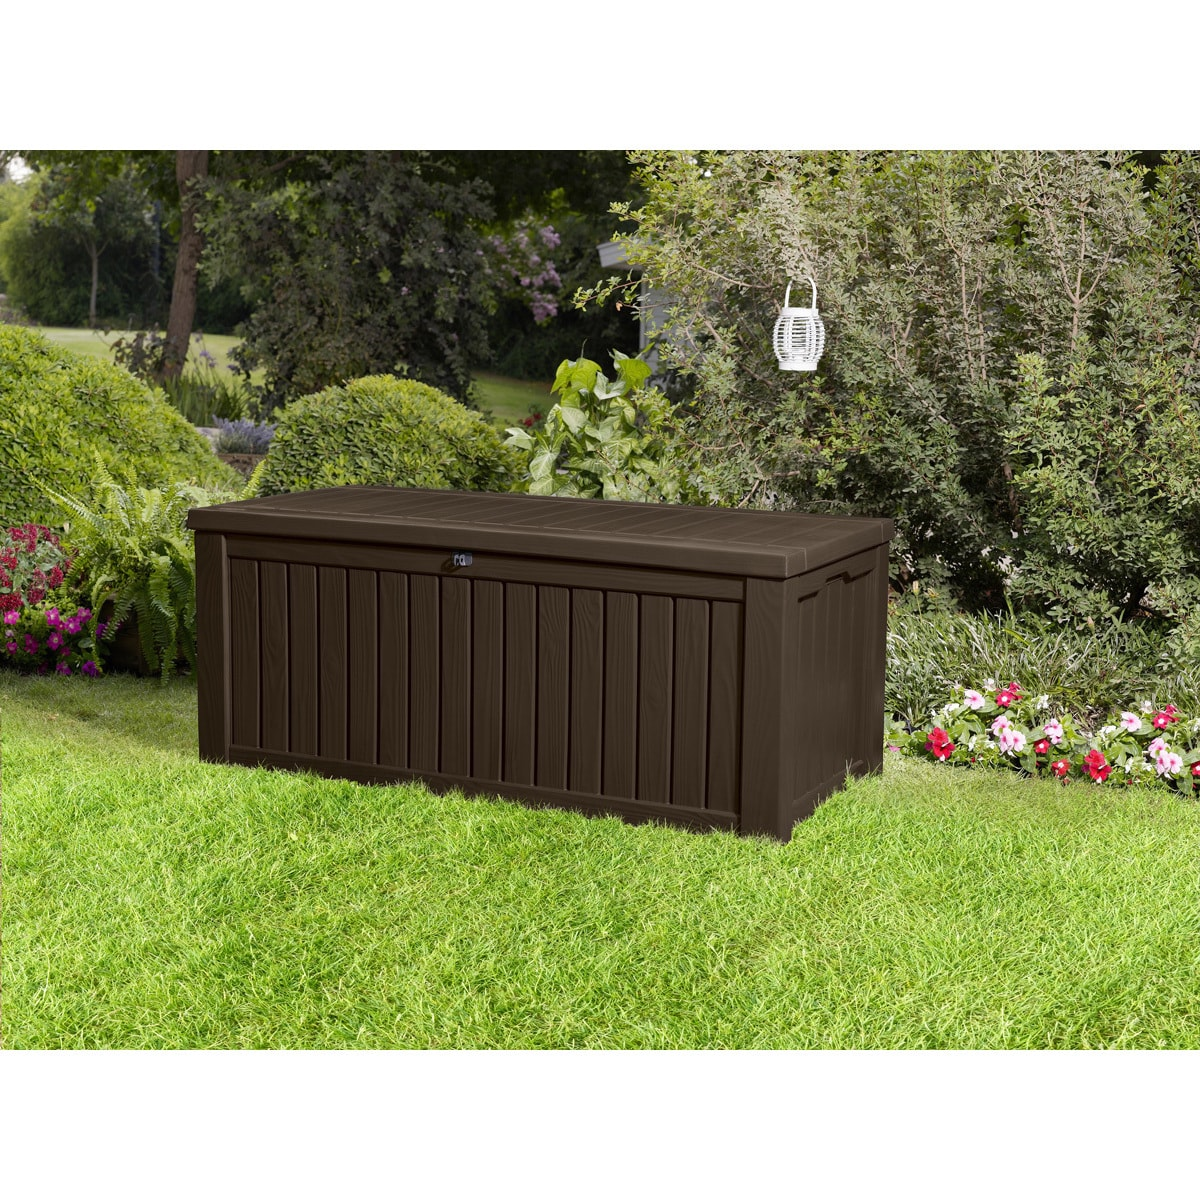 Keter Rockwood Plastic Deck Storage 150 Gallon Brown Patio Bench Box Free Shipping Today 19140502